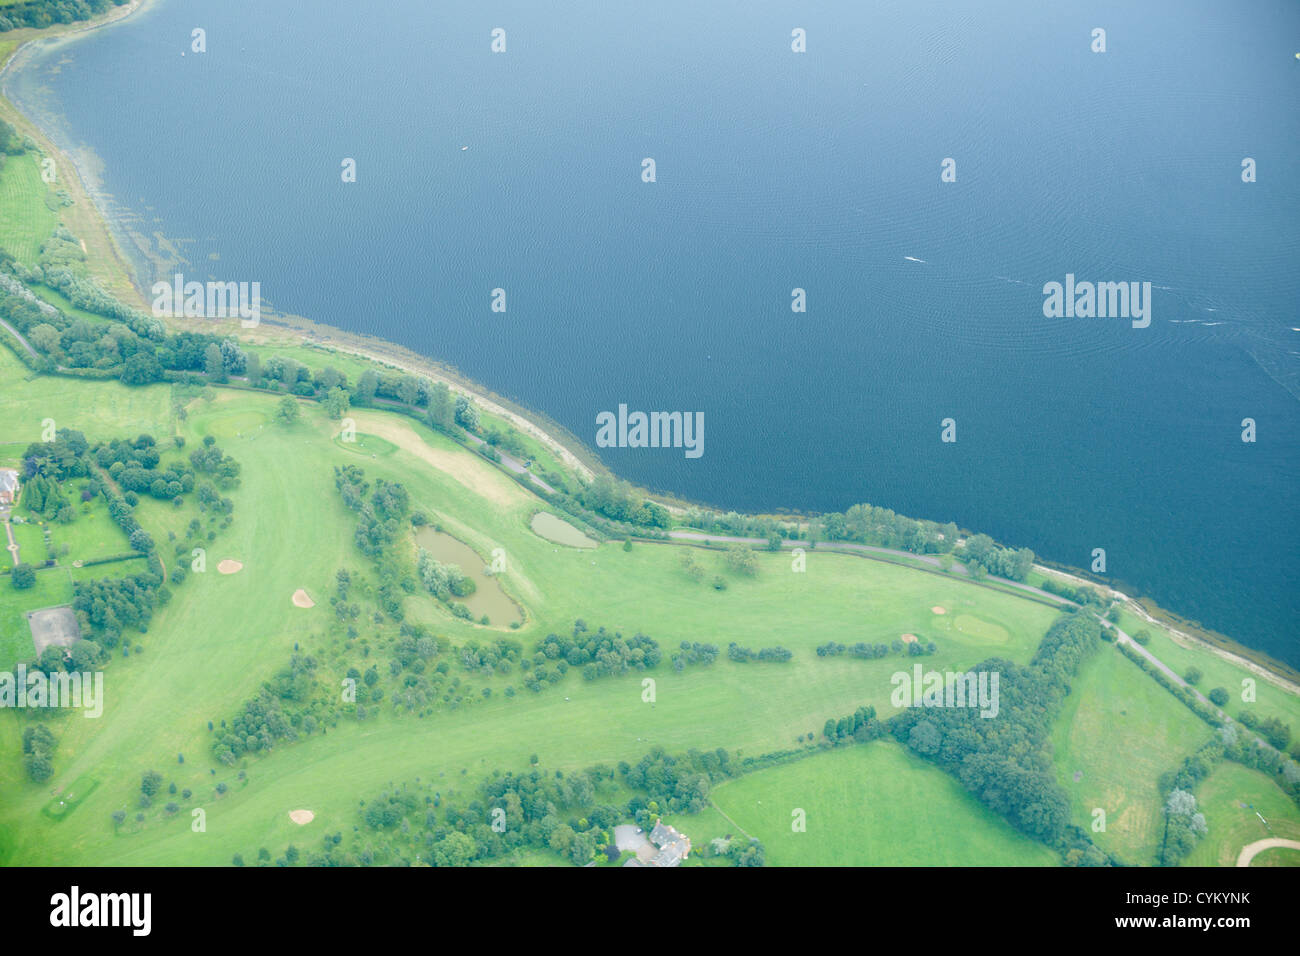 Aerial view of rural fields and lake - Stock Image